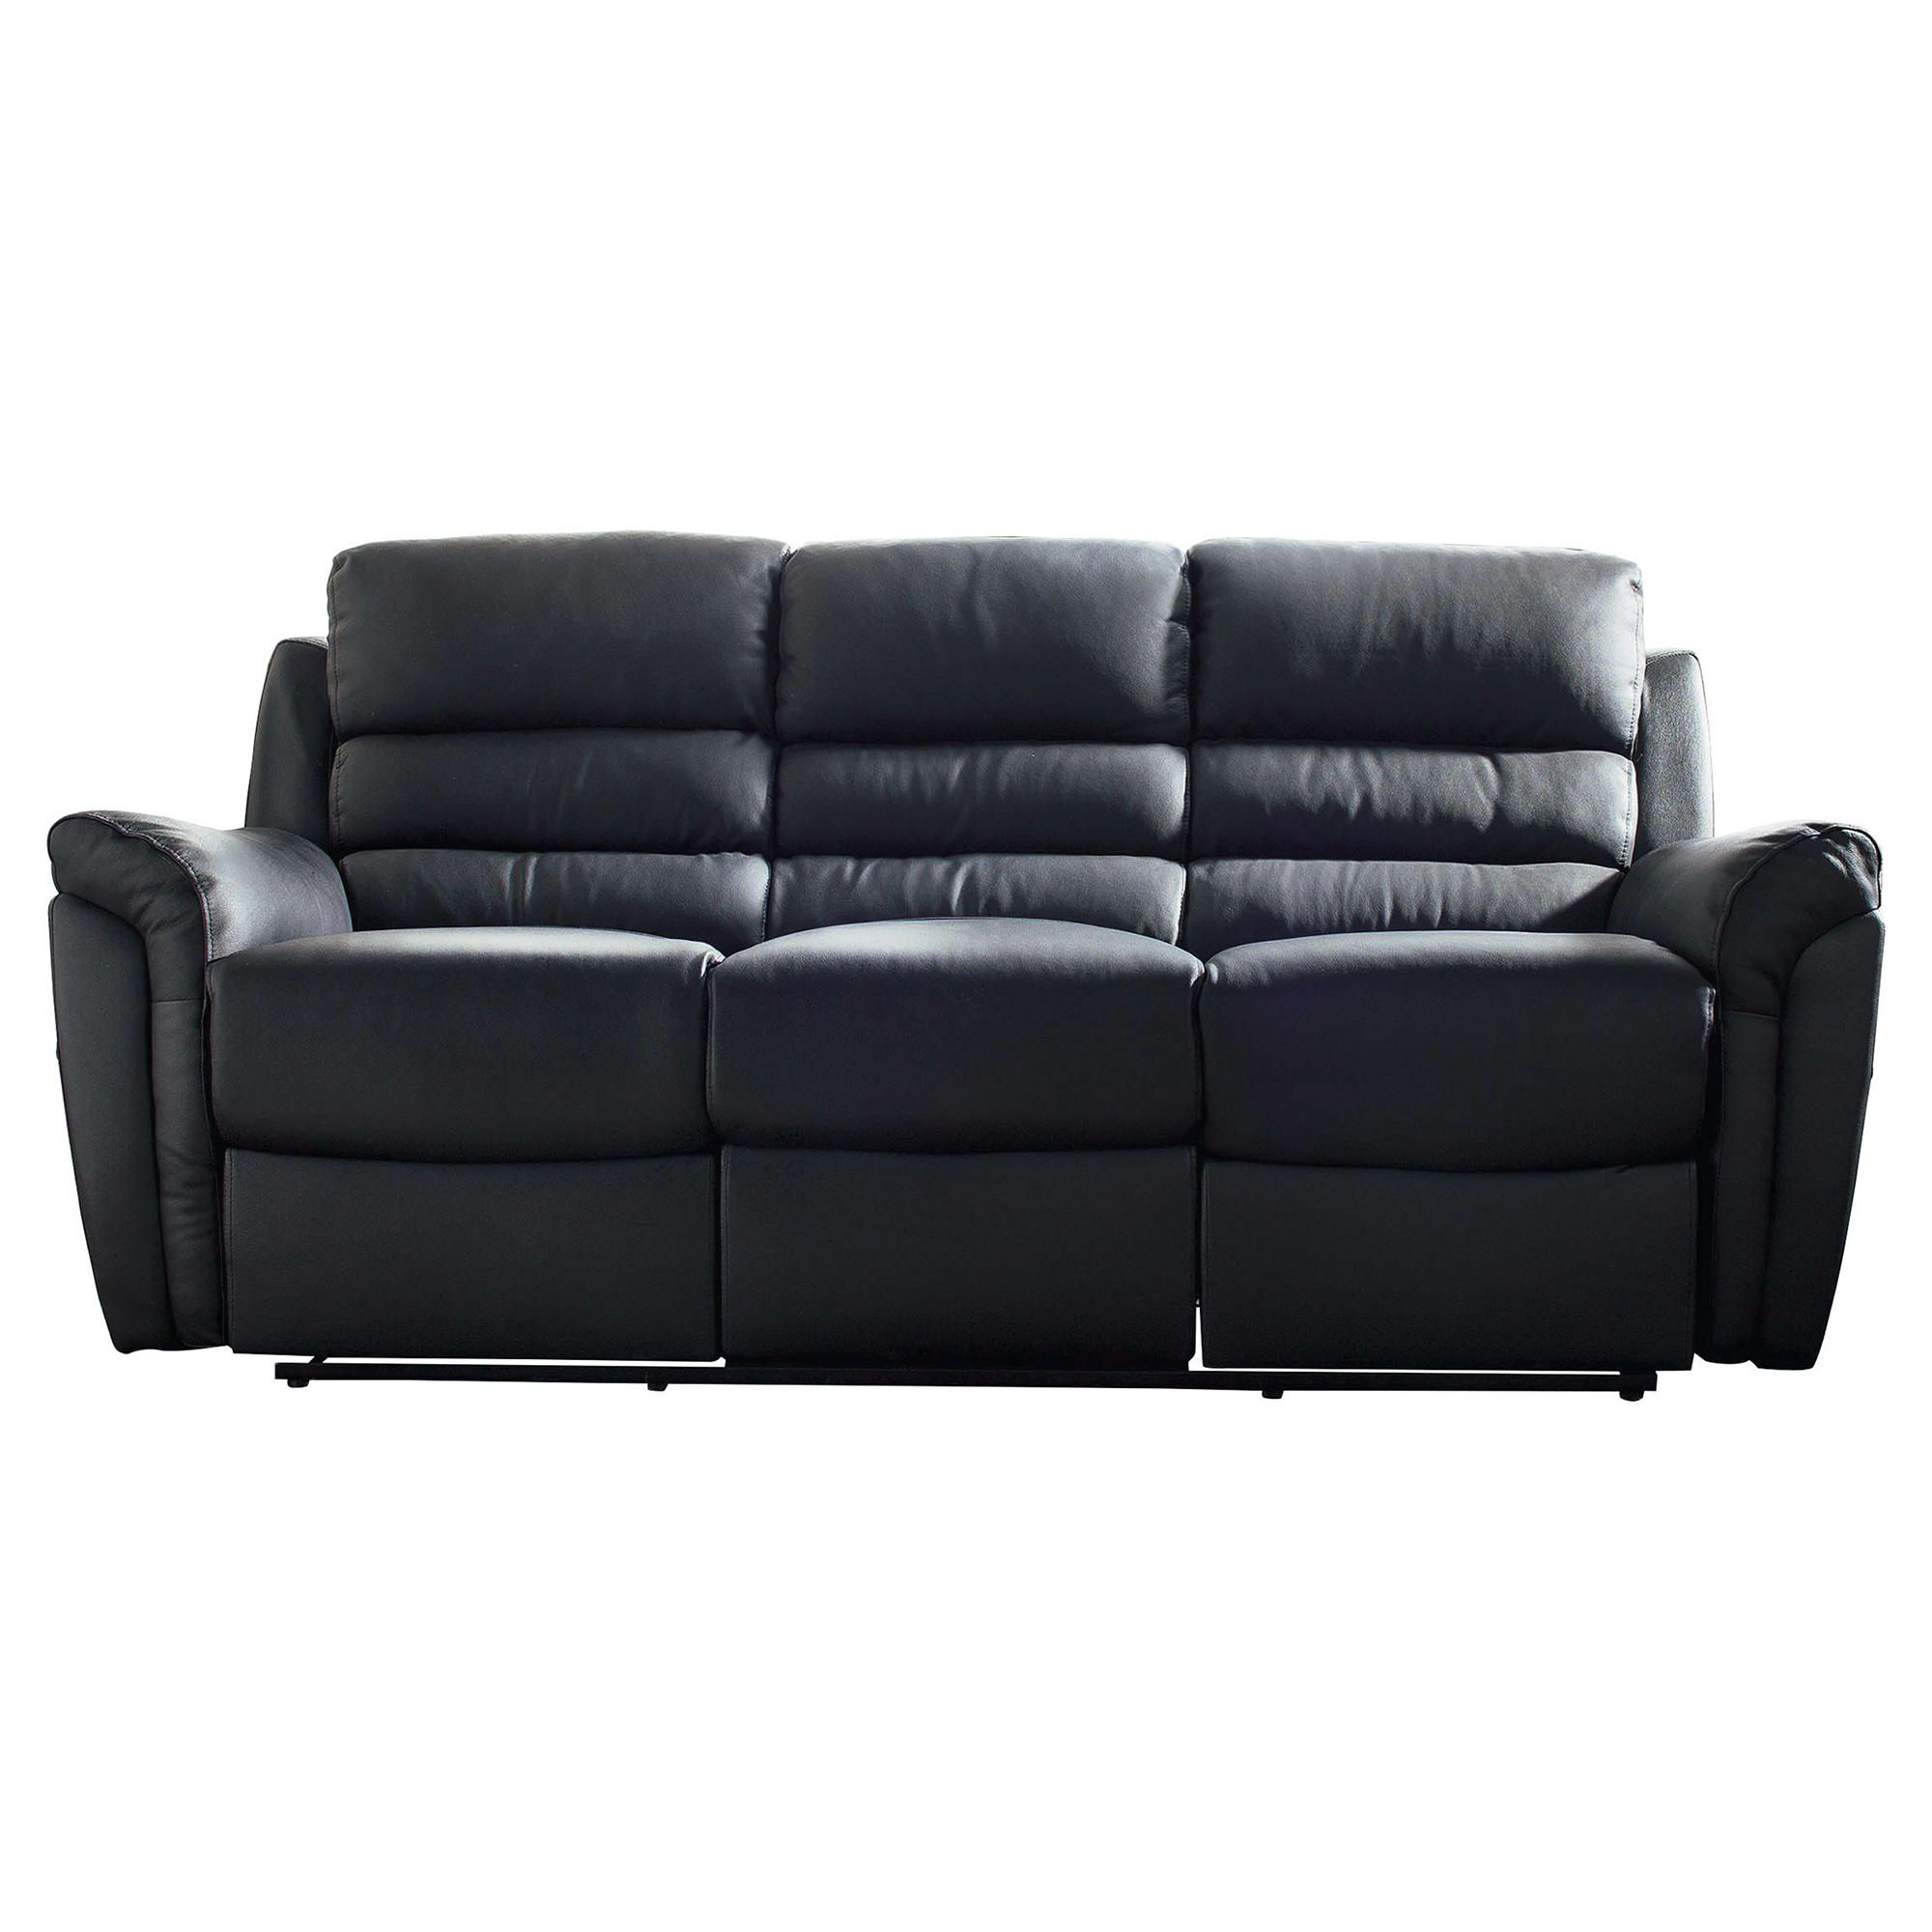 Chloe Large Leather Recliner Sofa Black at Tesco Direct